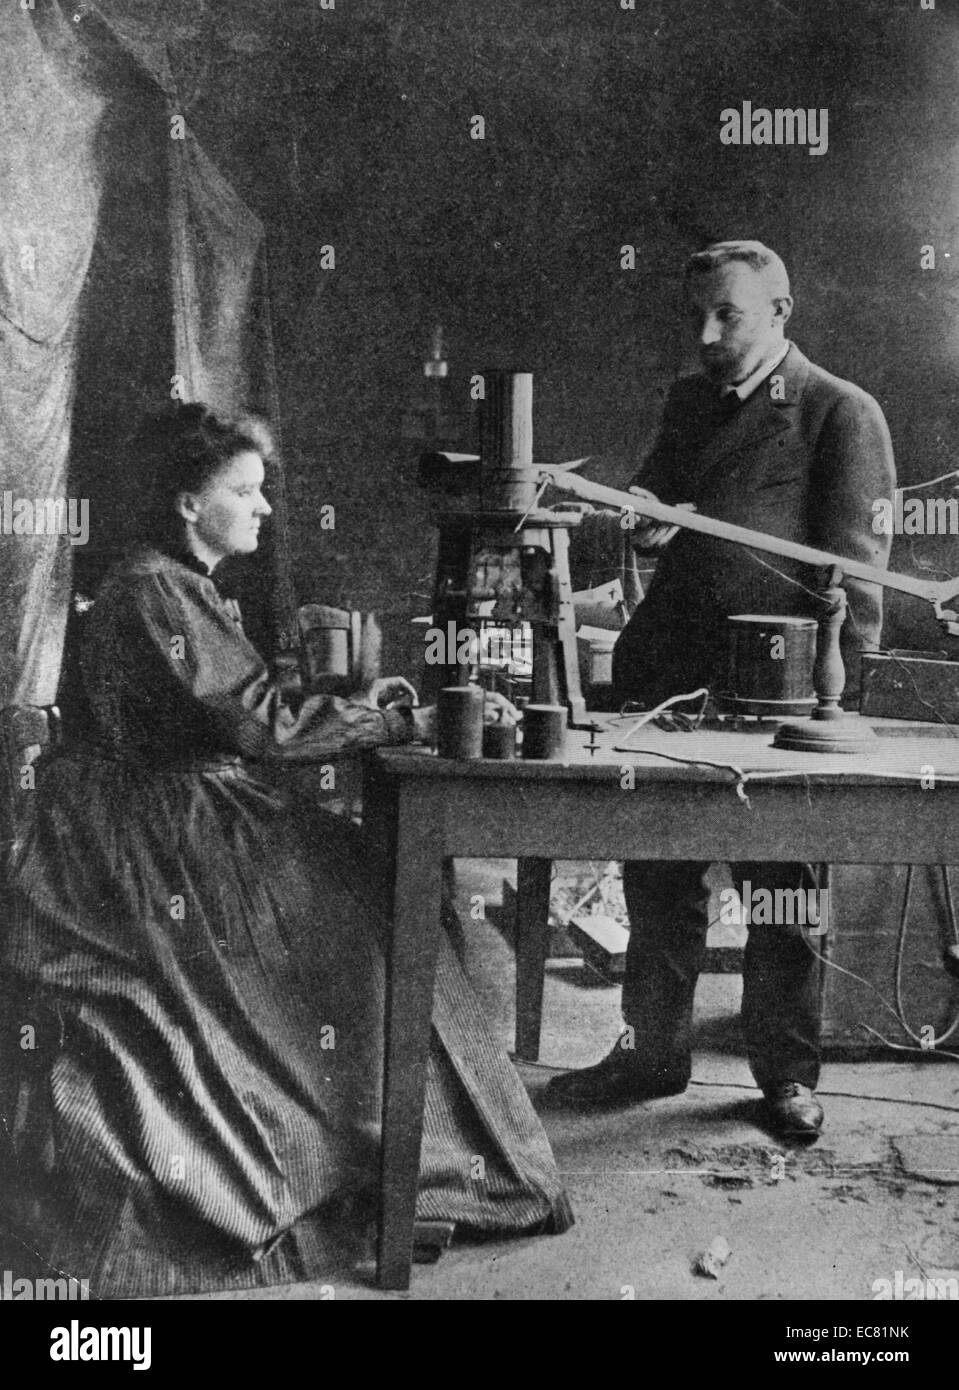 Photograph of Pierre and Marie Curie - Stock Image